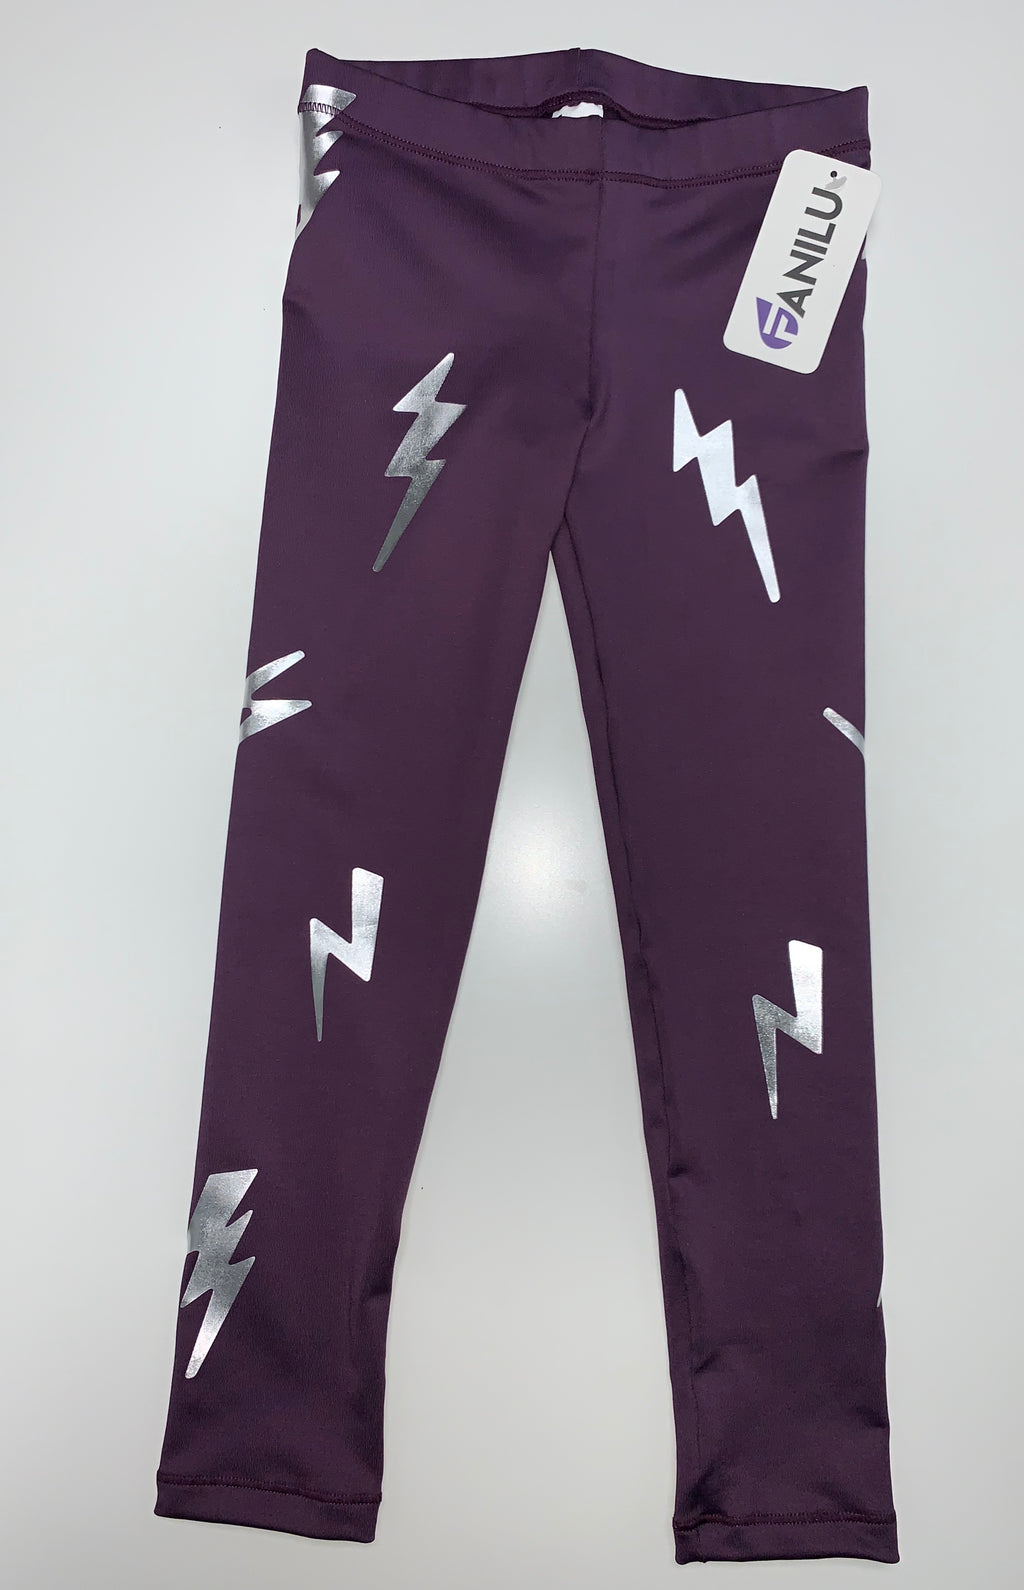 Bolts Silver Purple Leggings